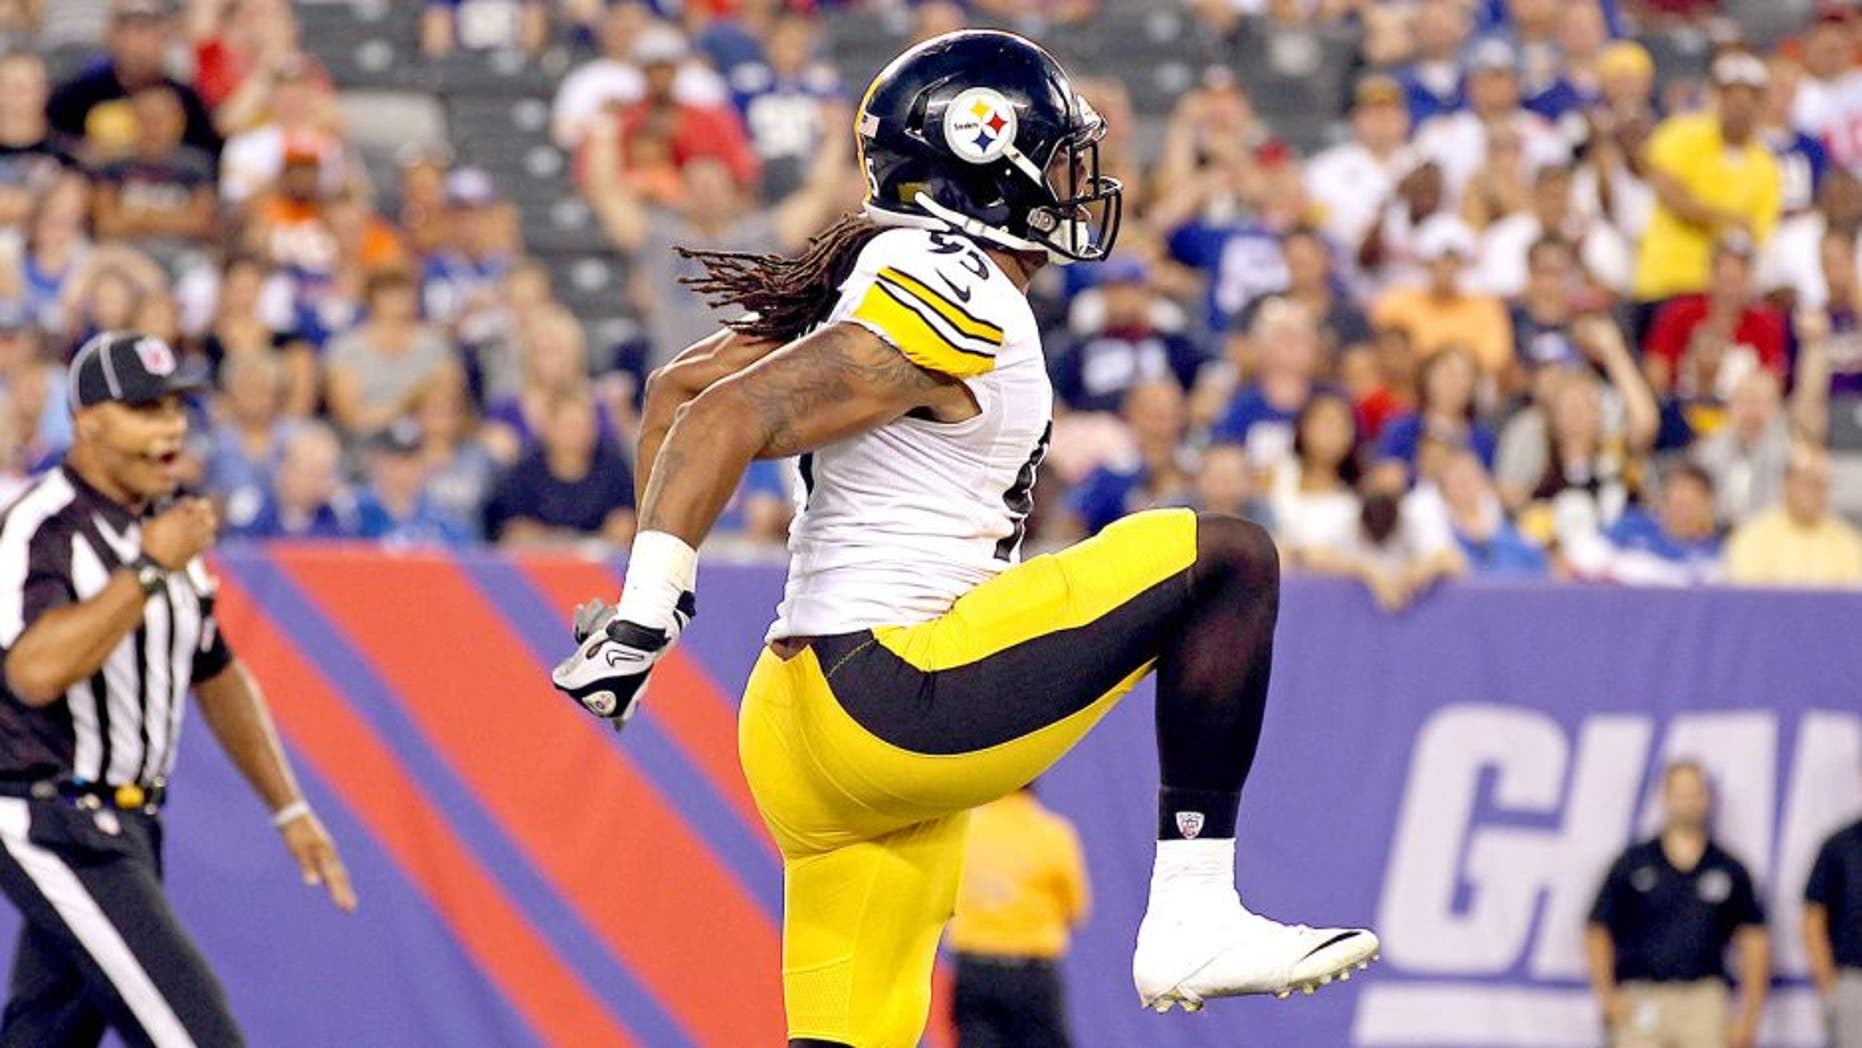 Aug 9, 2014; East Rutherford, NJ, USA; Pittsburgh Steelers outside linebacker Jarvis Jones (95) celebrates after sacking New York Giants quarterback Eli Manning (10) during the first quarter at MetLife Stadium. Mandatory Credit: Adam Hunger-USA TODAY Sports